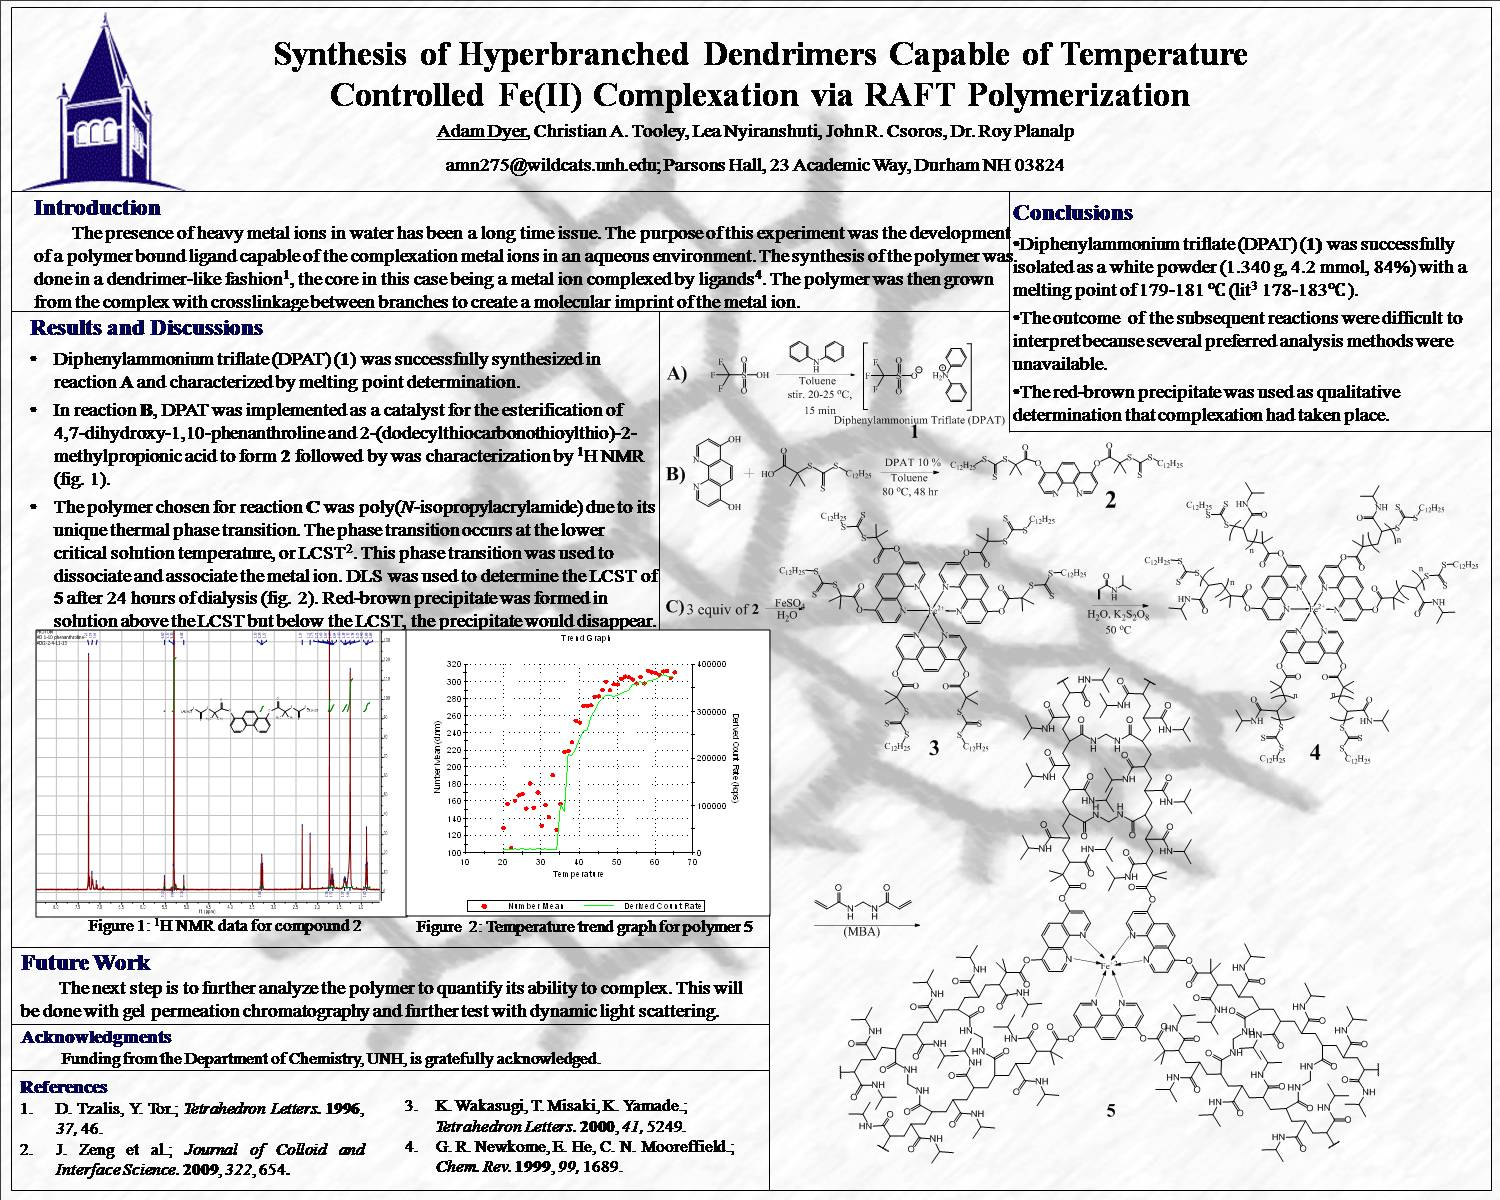 Synthesis Of Hyperbranched Dendrimers Capable Of Temperature Controlled Fe(Ii) Complexation Via Raft Polymerization  by amn275